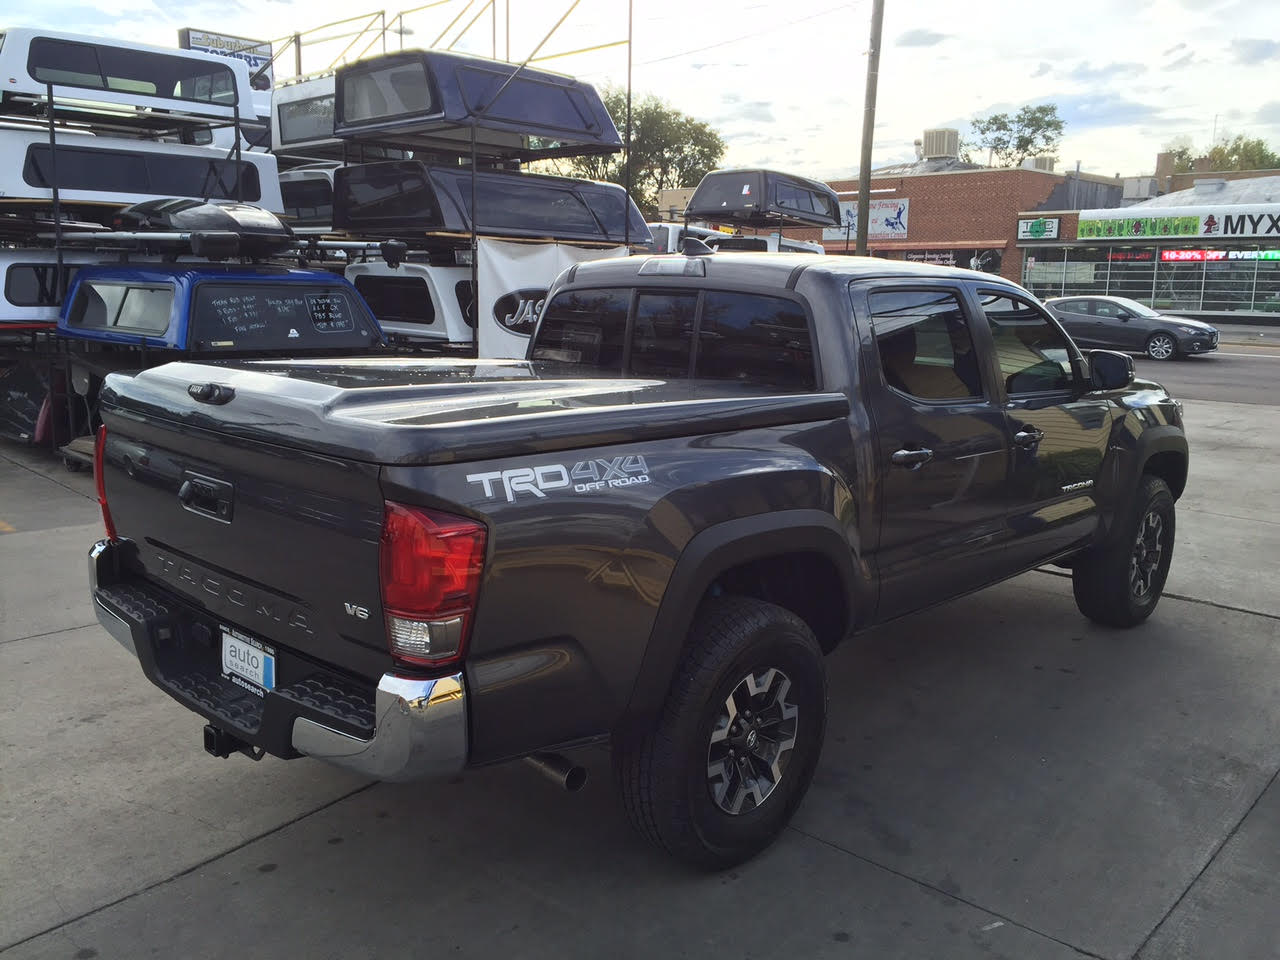 2016 Tacoma Are Lsii Suburban Toppers